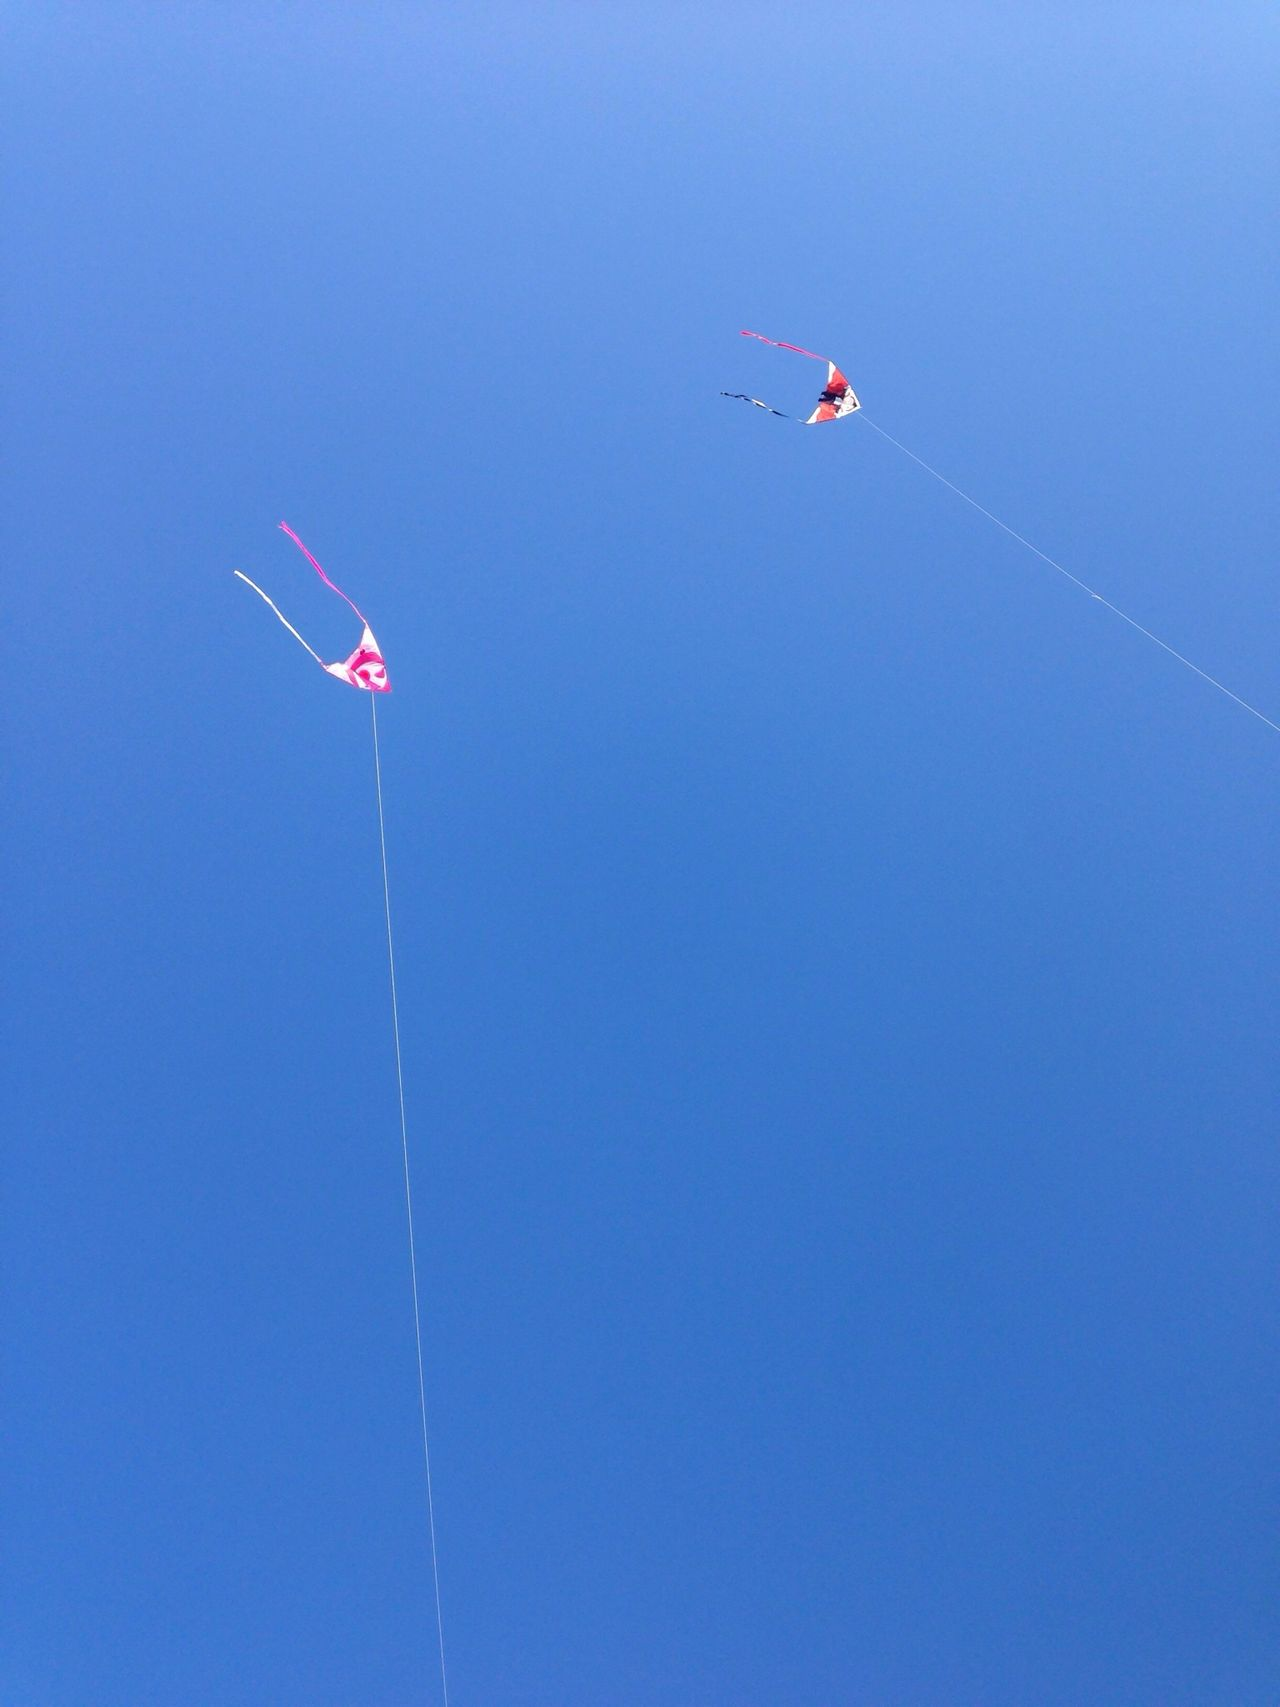 Low angle view of kites against clear blue sky